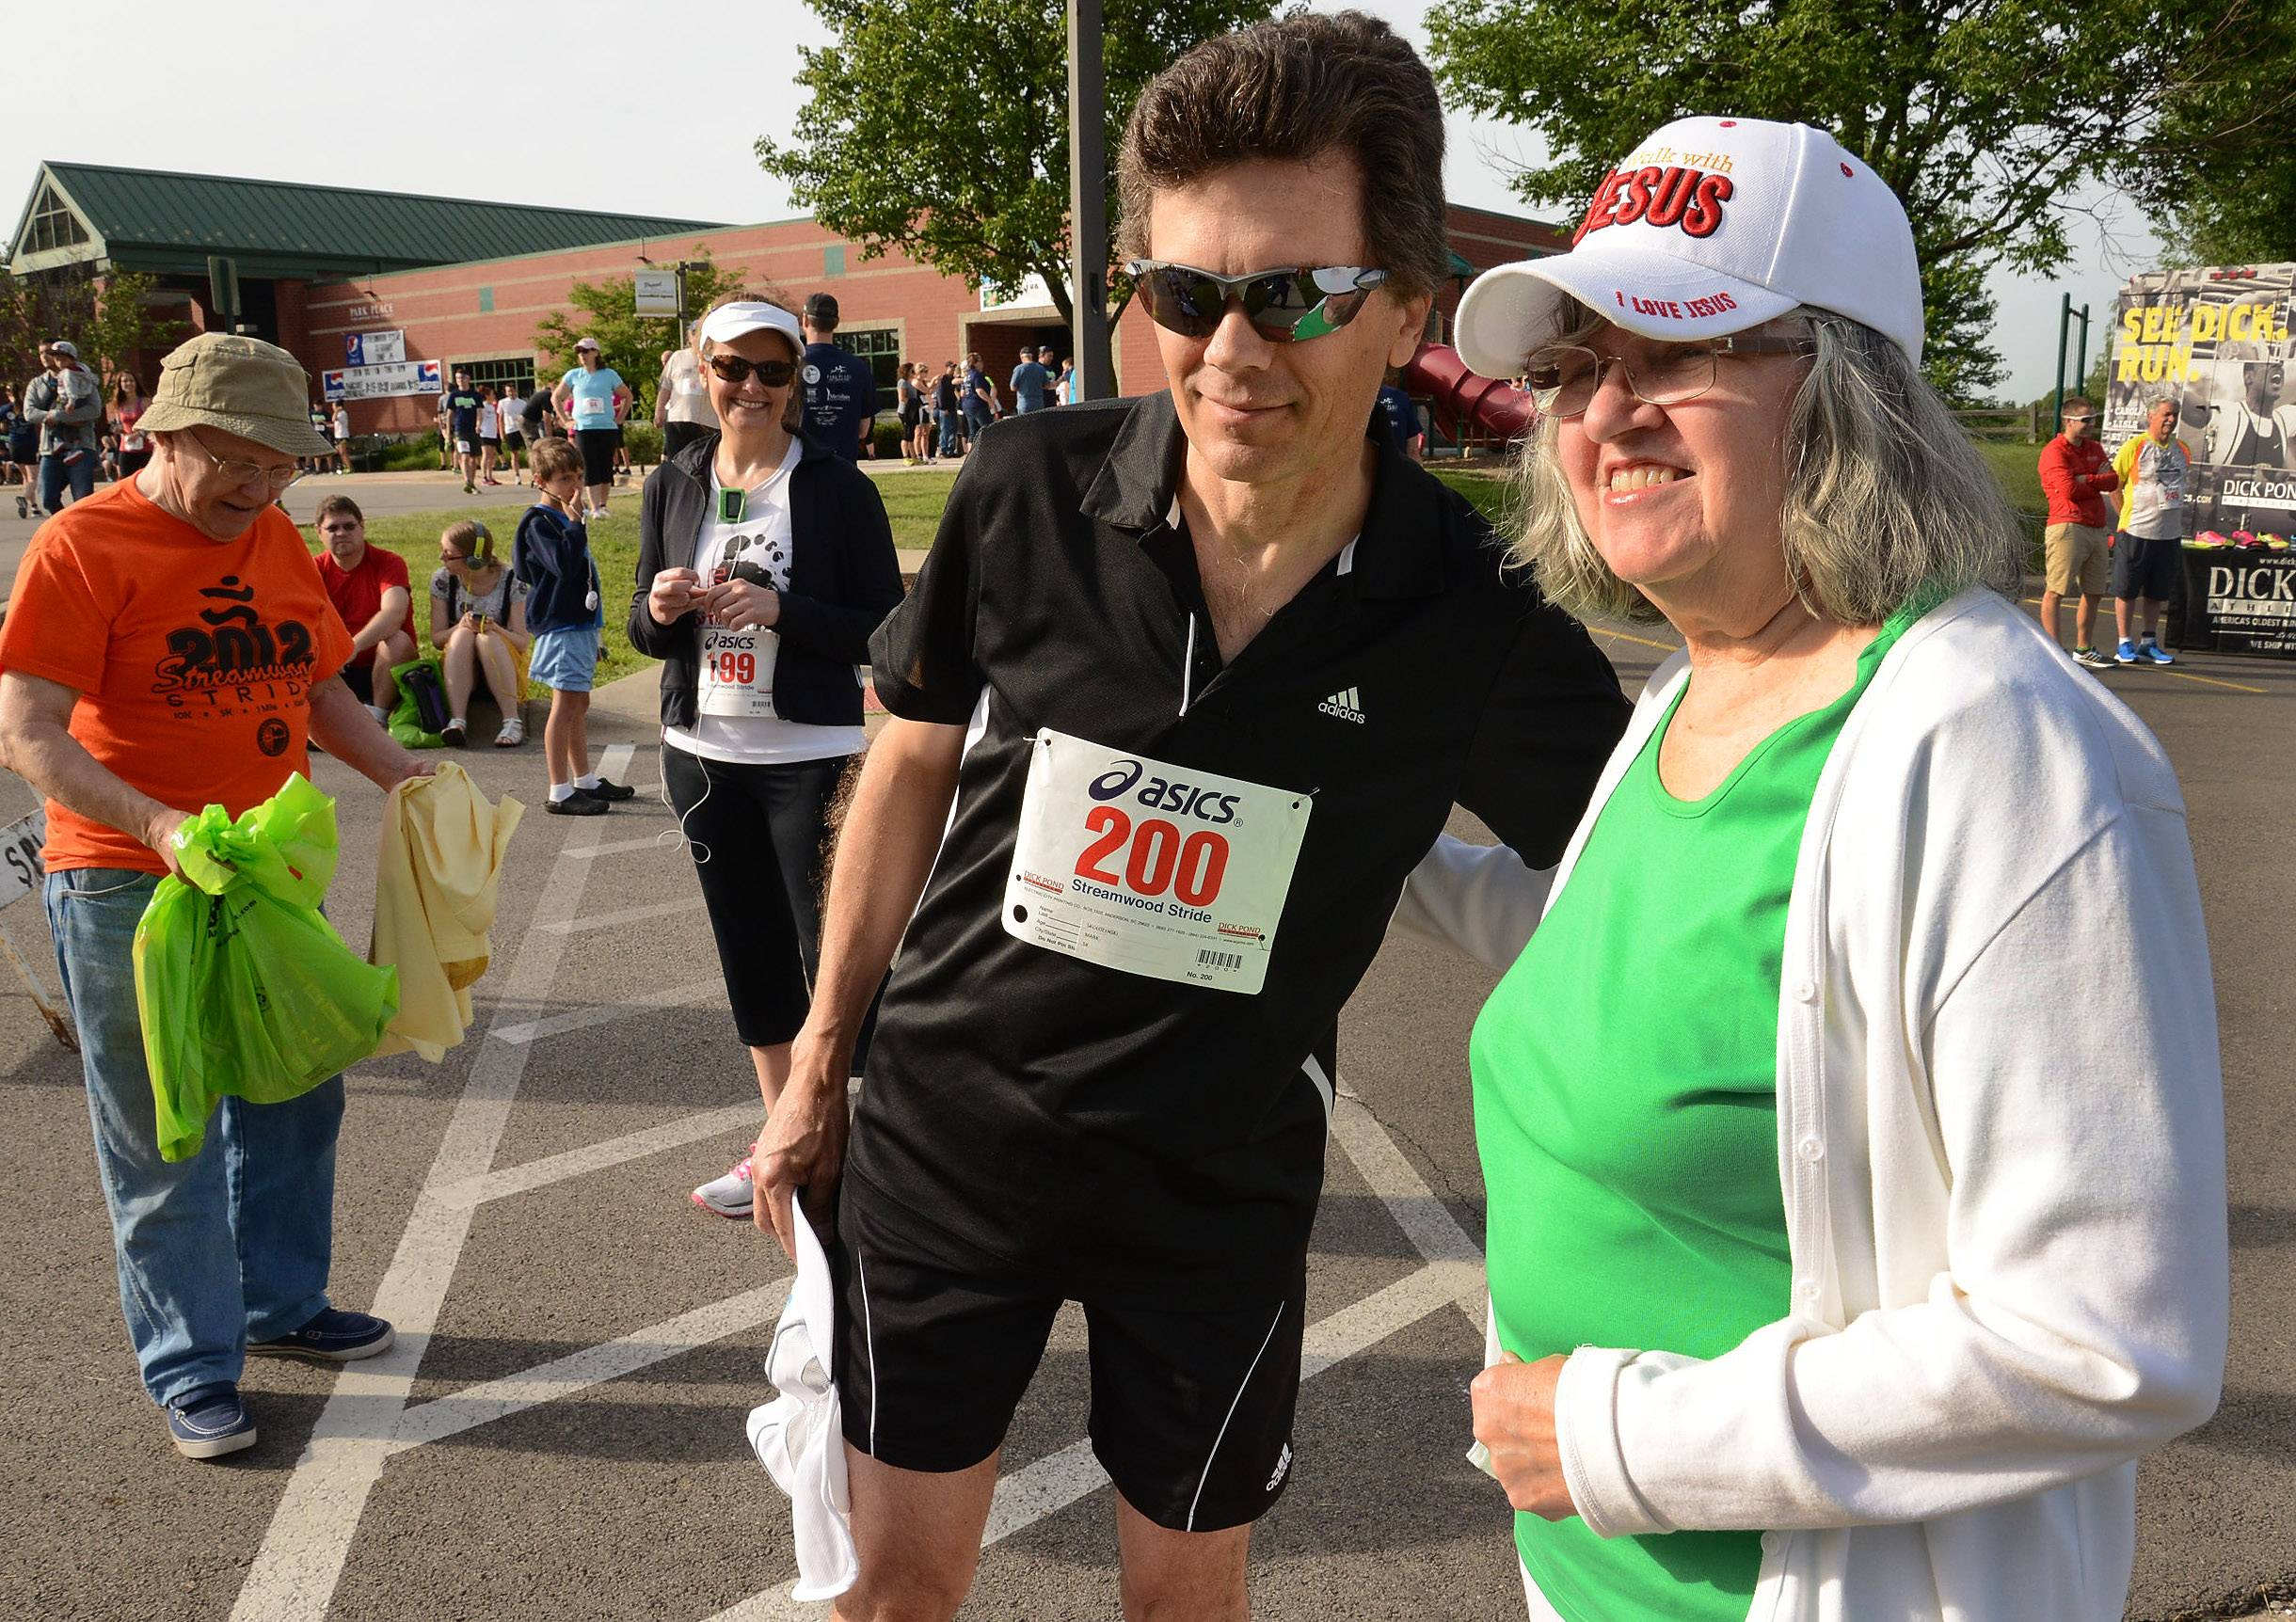 Mark Skolozynski, of Elgin, gets some encouragement from his mother, Carol Skolozynski, of Streamwood, before the Streamwood Stride 5K/10K/Fun Run Saturday morning at the Park Place Family Recreation Center. Carol Skolozynski has been running for fifteen years and won the gold last year at the age of 72. This year a bad back is keeping her out of the event.